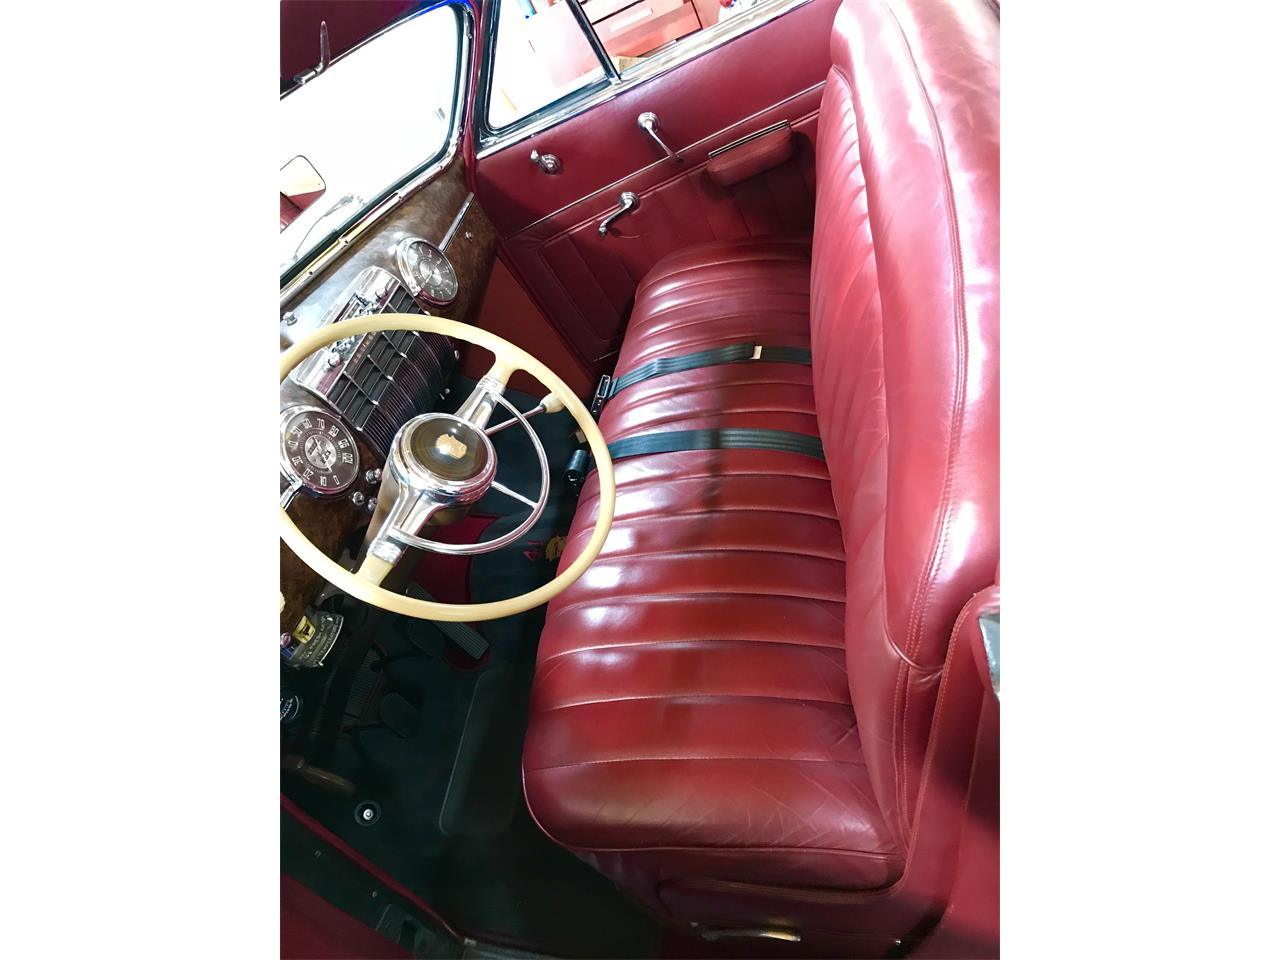 Large Picture of '41 Cadillac Series 62 located in rancho cucamonga California - $88,000.00 Offered by a Private Seller - N67J